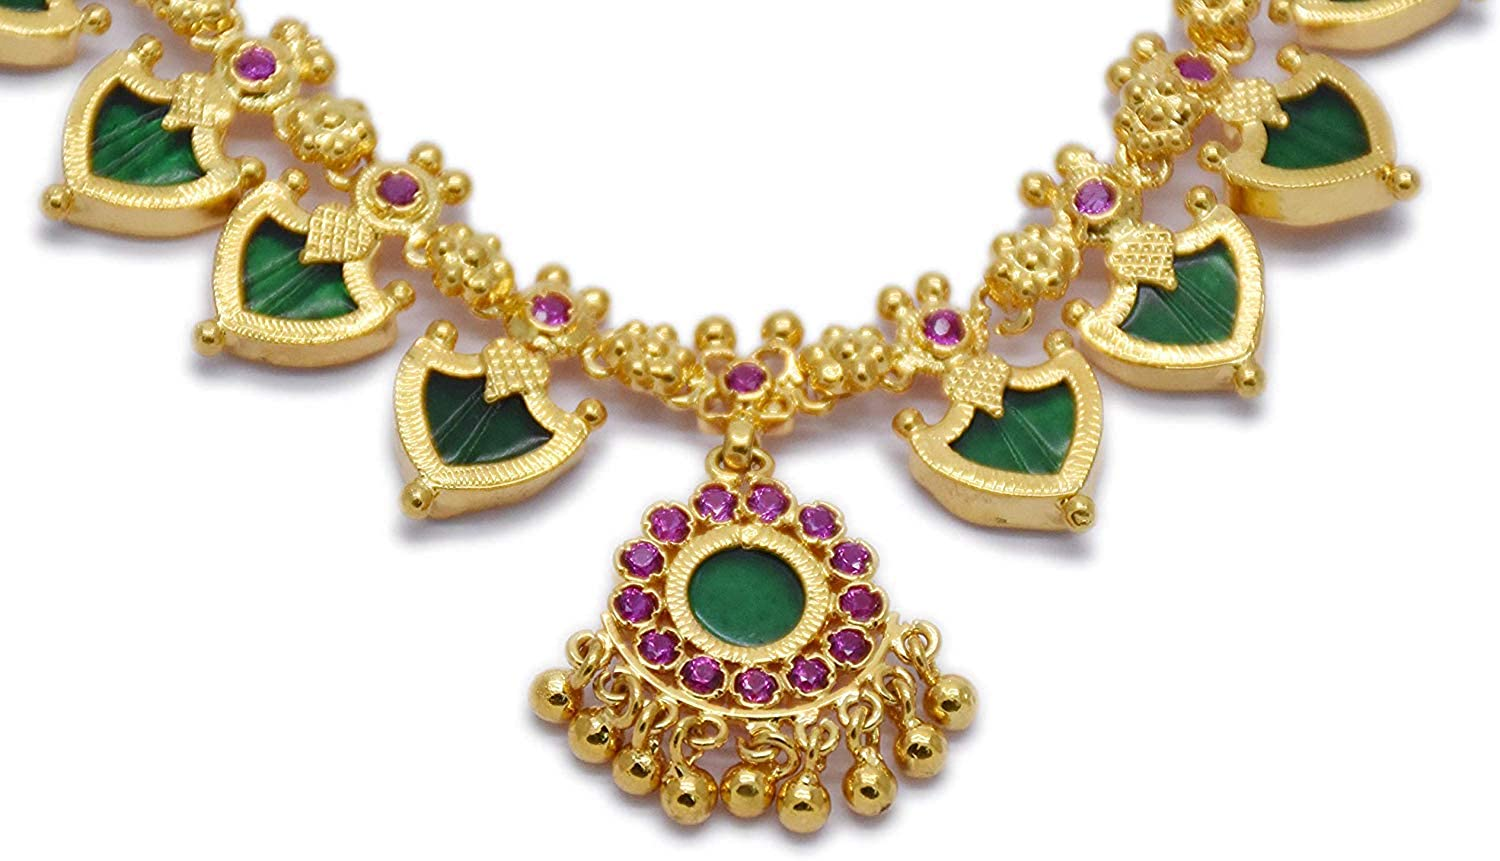 Buy RFJ Kerala Traditional and Ethnic Three Katta Green Palakka Adjustable  Length Necklace with Small Ruby Stone for Women at Amazon.in